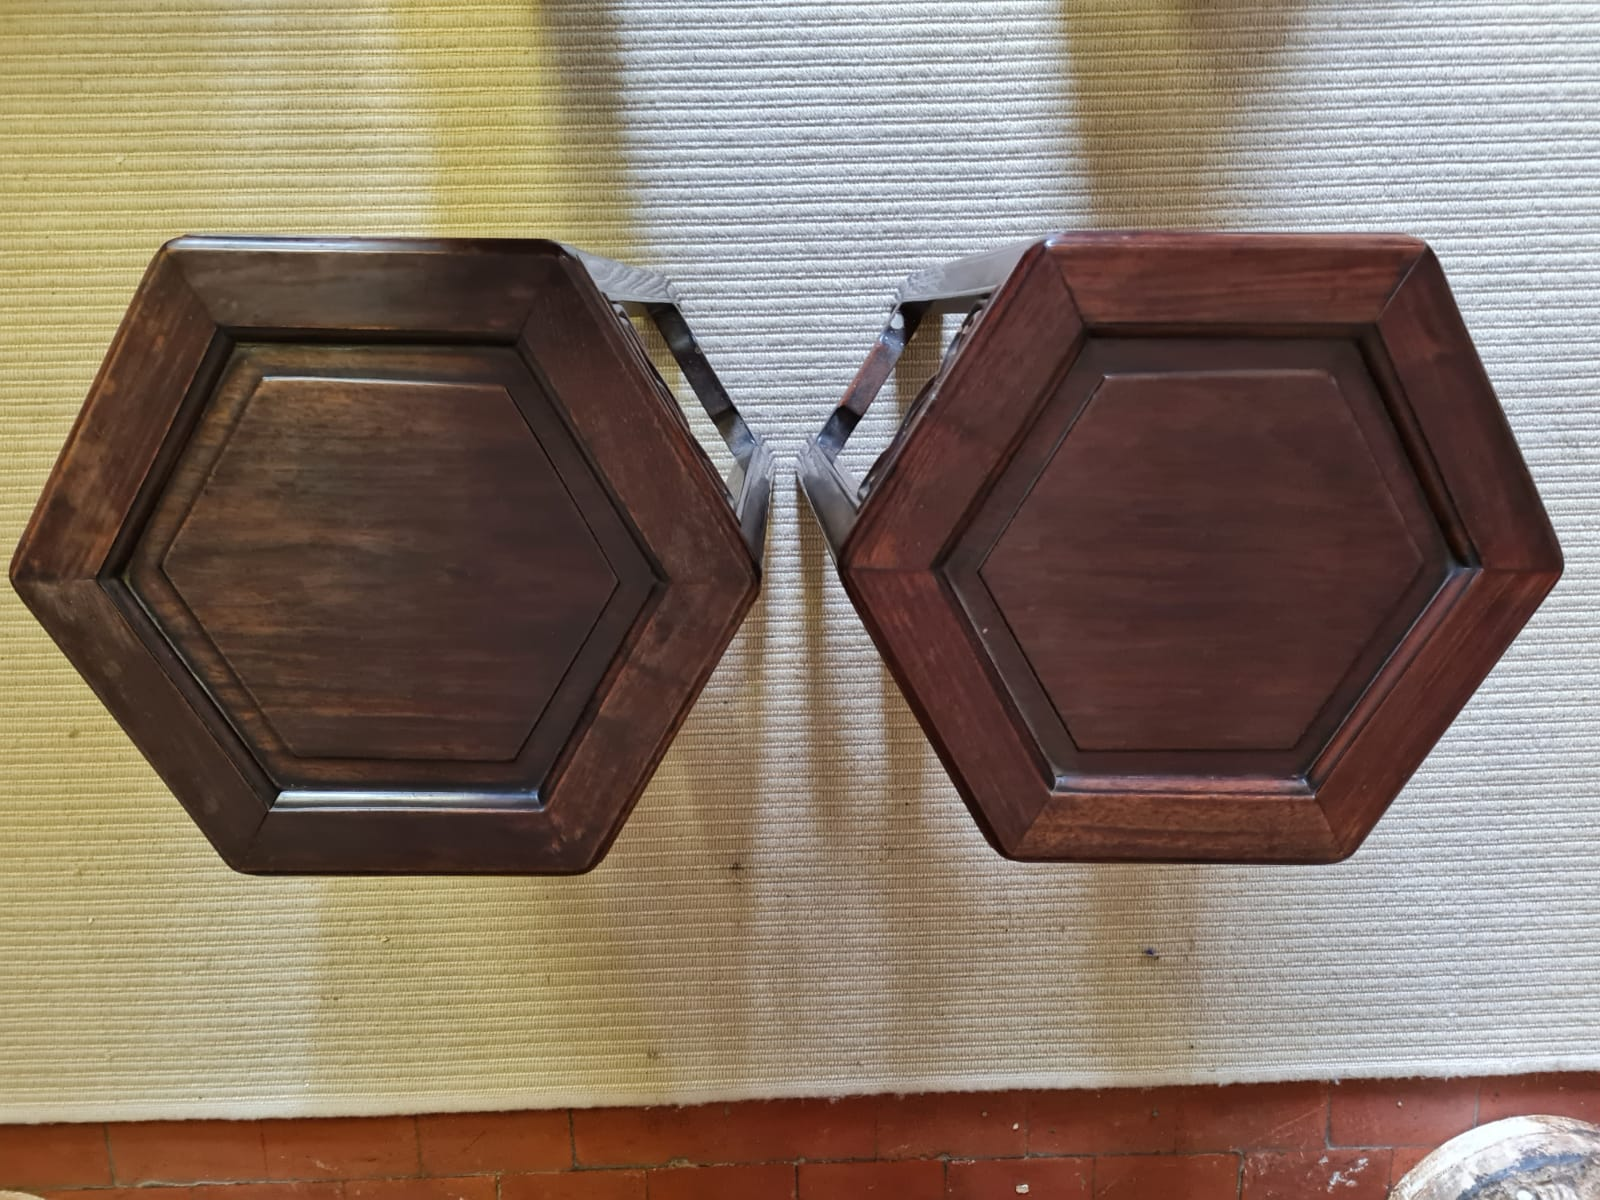 A PAIR OF 19TH CENTURY CHINESE HARDWOOD HEXAGONAL OCCASIONAL TABLES With pierced fretwork apron, - Image 3 of 3